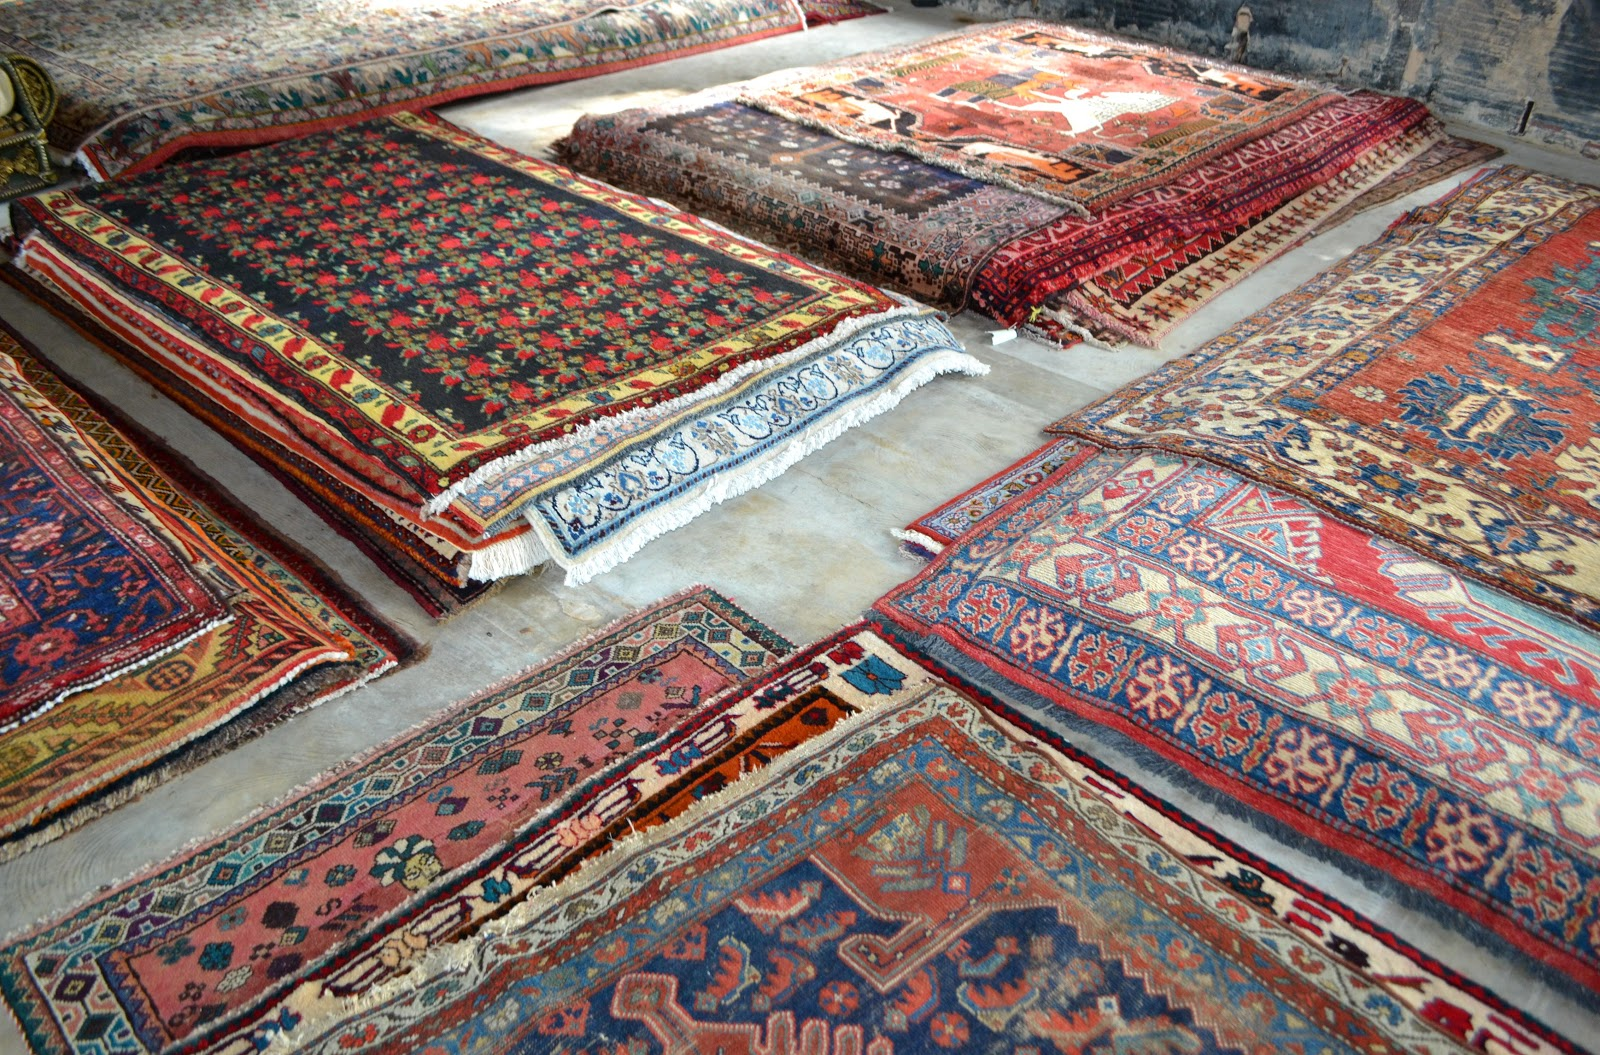 This Fall Carpetbeggers In Reisterstown Maryland Had A Persian Rug There Were Two Warehouses One Filled With Beautiful Rugs And Another Antique